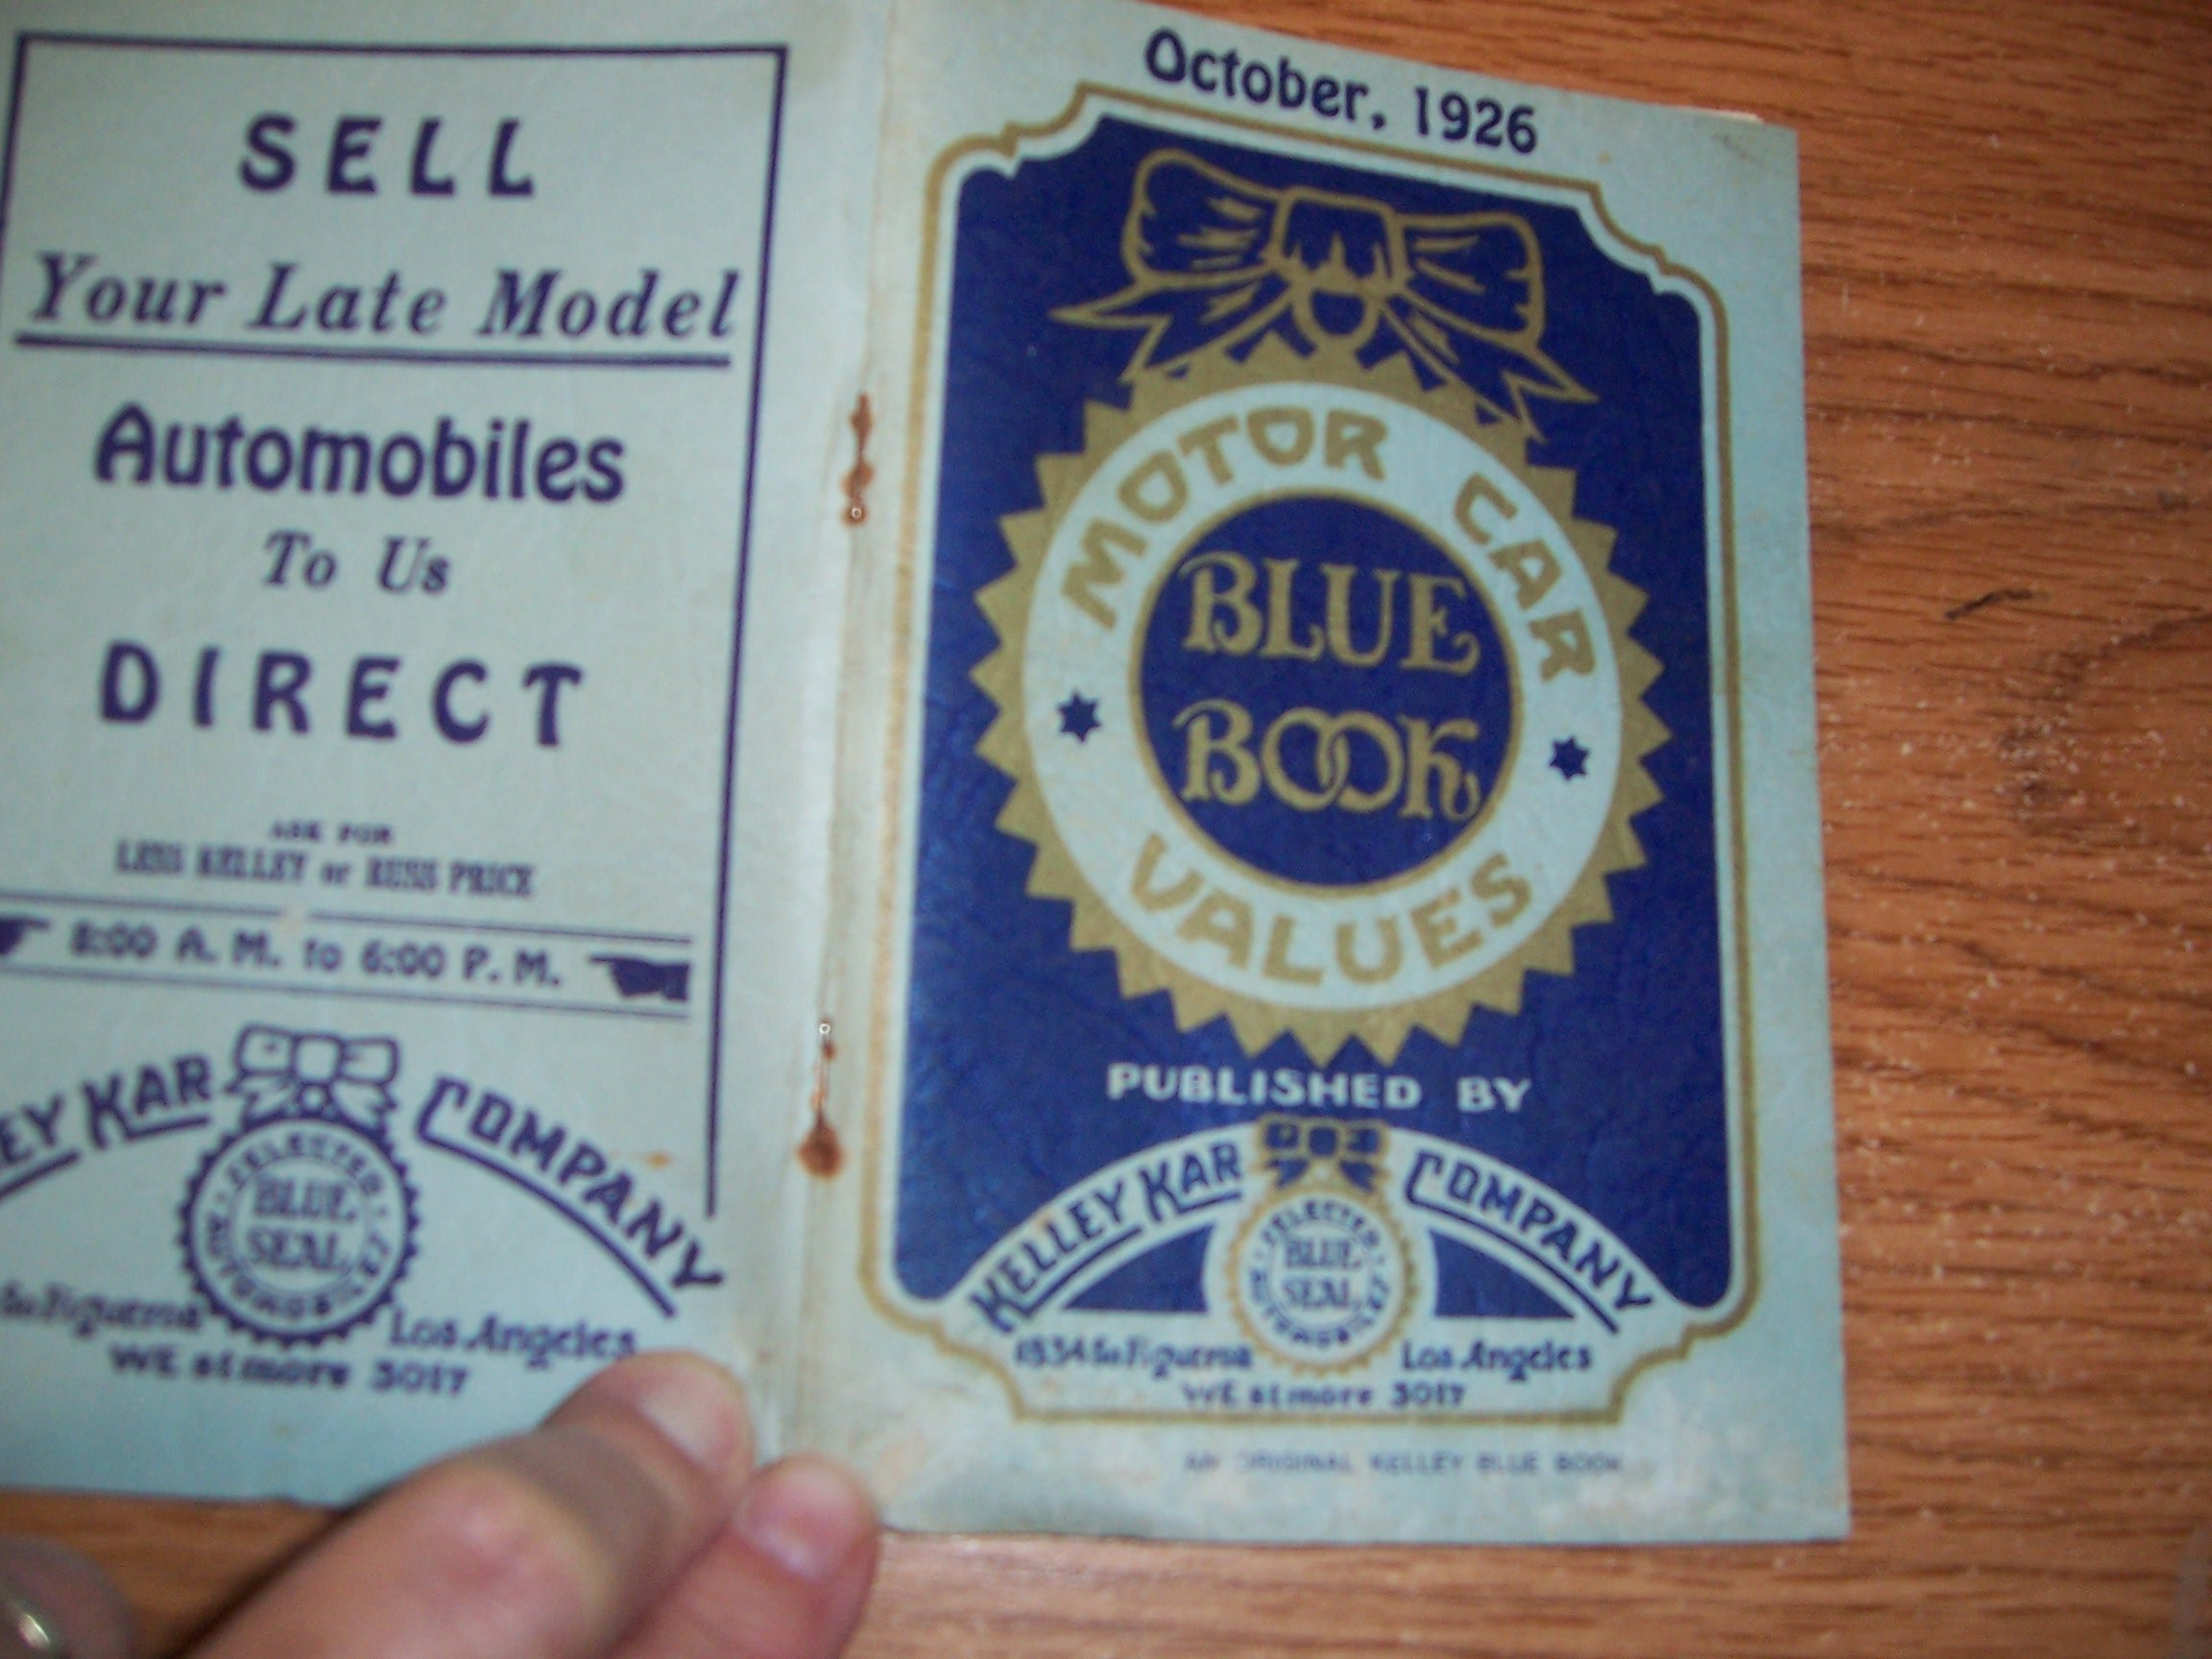 Kelley Kar Motor Car Values Blue Book Edition Of October 1926